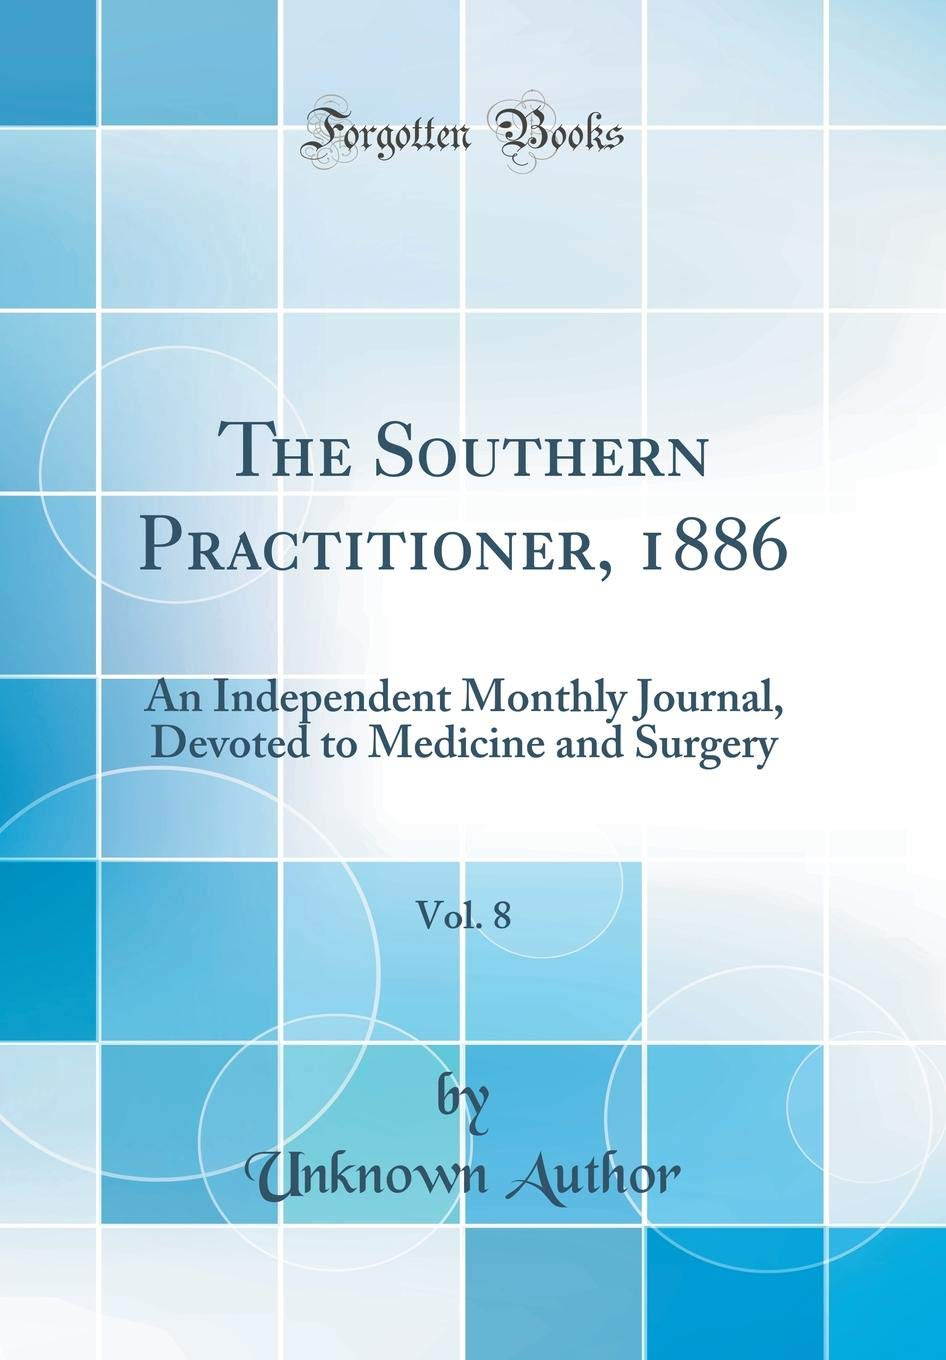 Download The Southern Practitioner, 1886, Vol. 8: An Independent Monthly Journal, Devoted to Medicine and Surgery (Classic Reprint) PDF